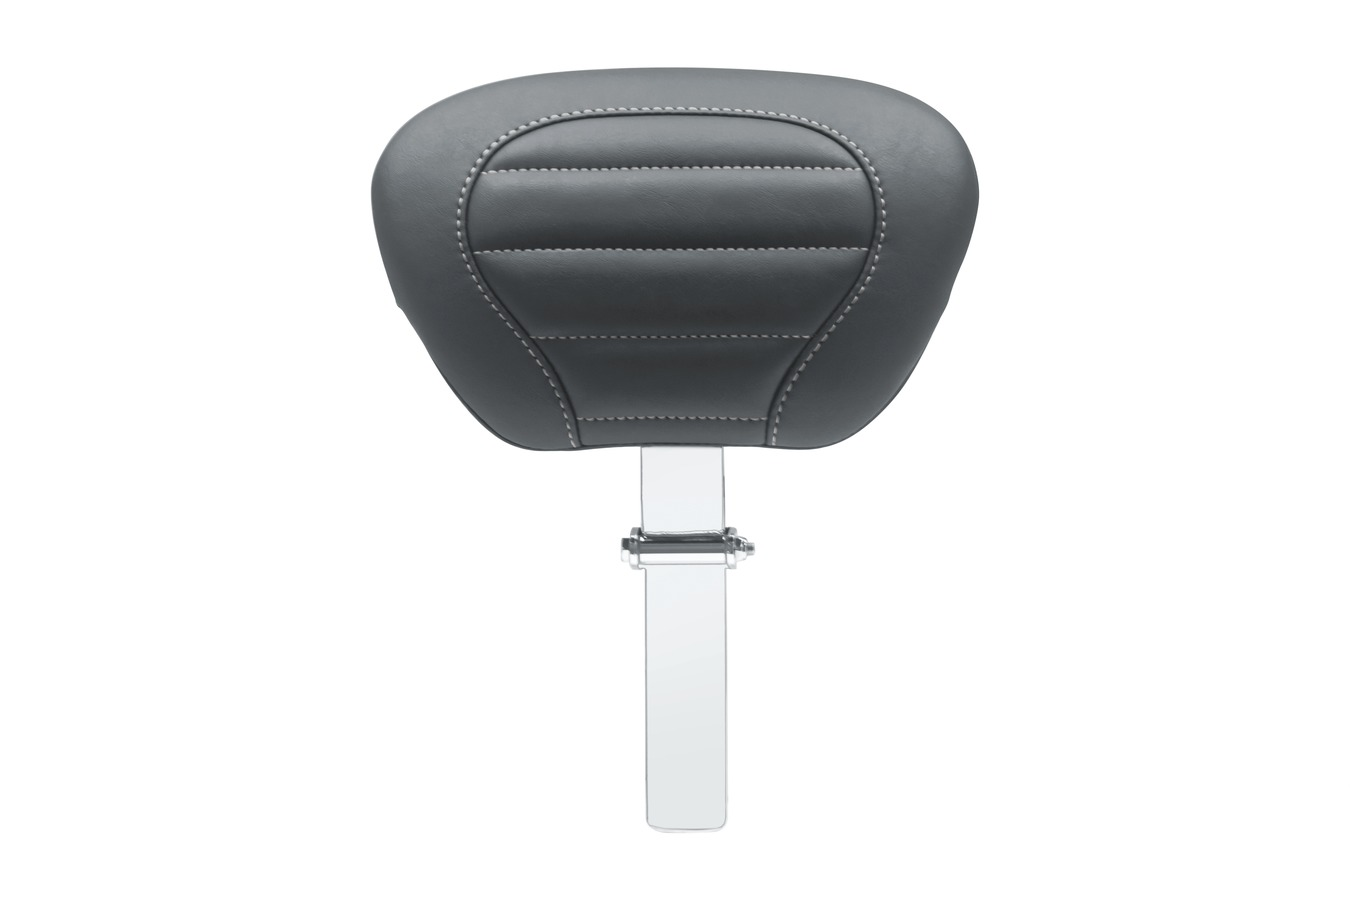 Super Touring Deluxe Driver Backrest with Gunmetal Grey Stitching, Black